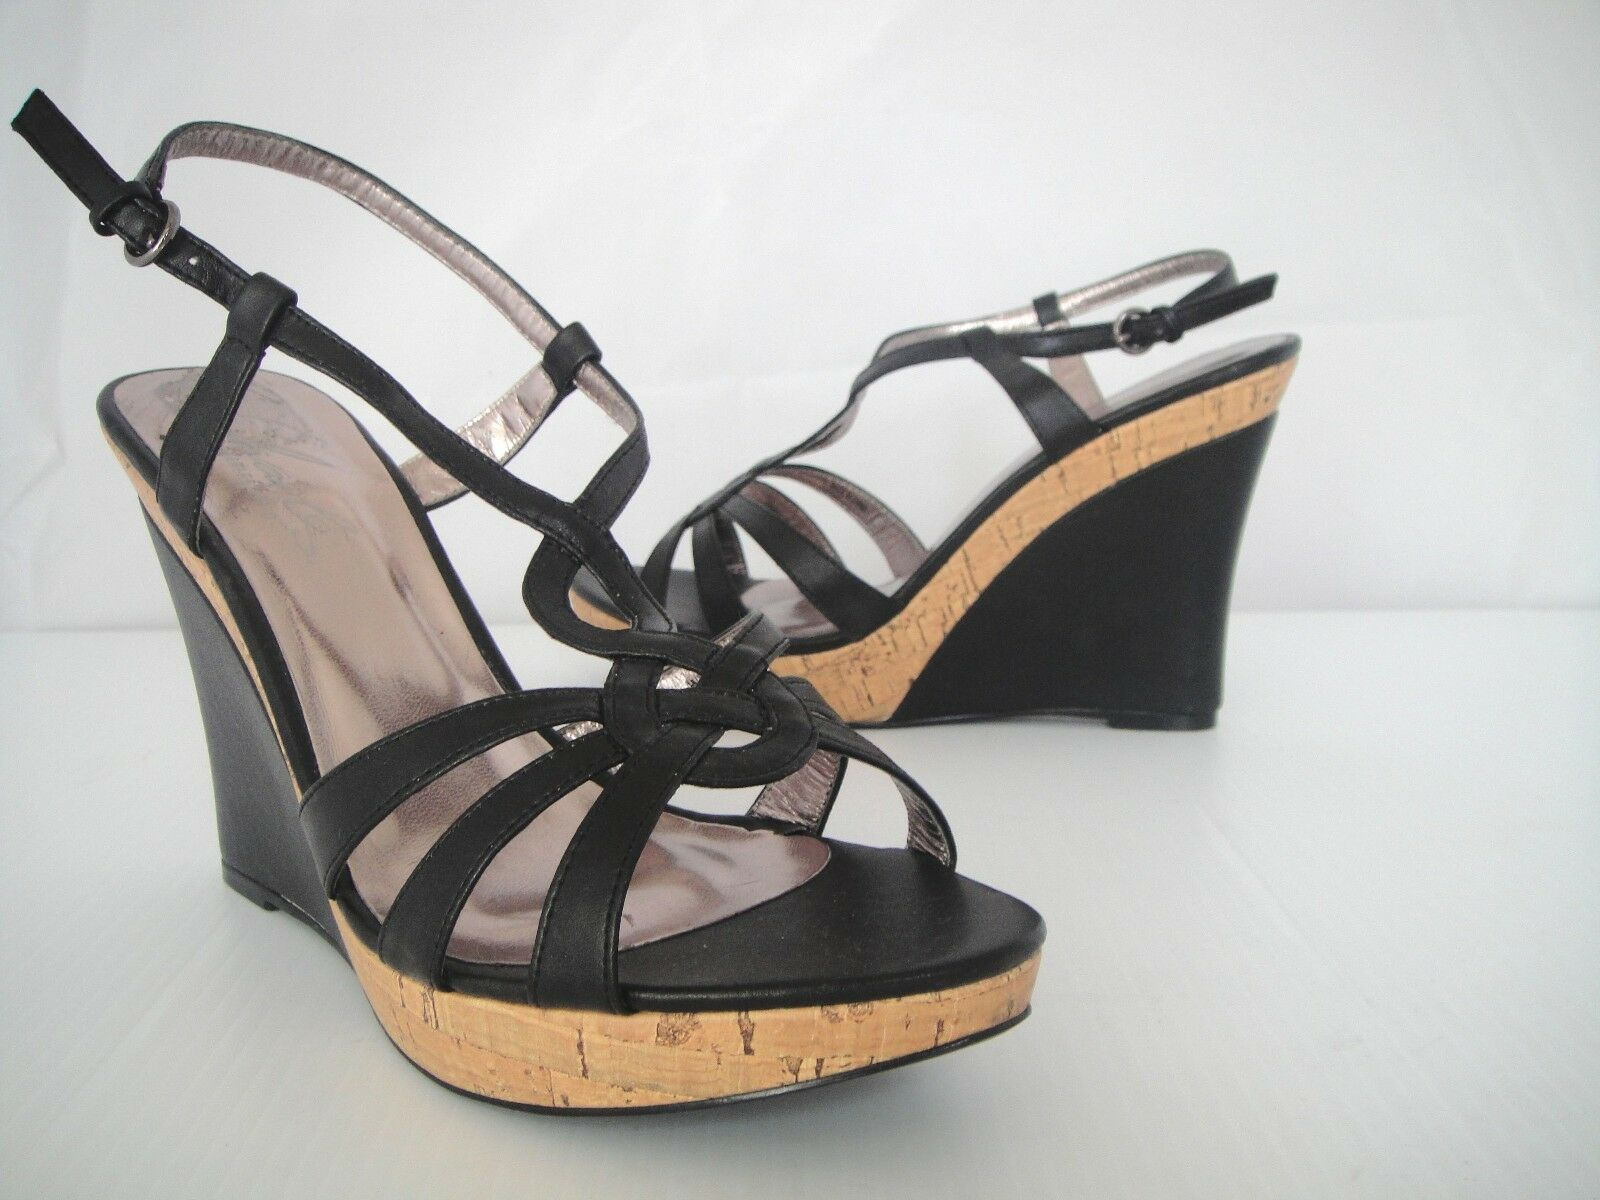 New Charles by Charles David Women's  Wedge Sandal size 10  135